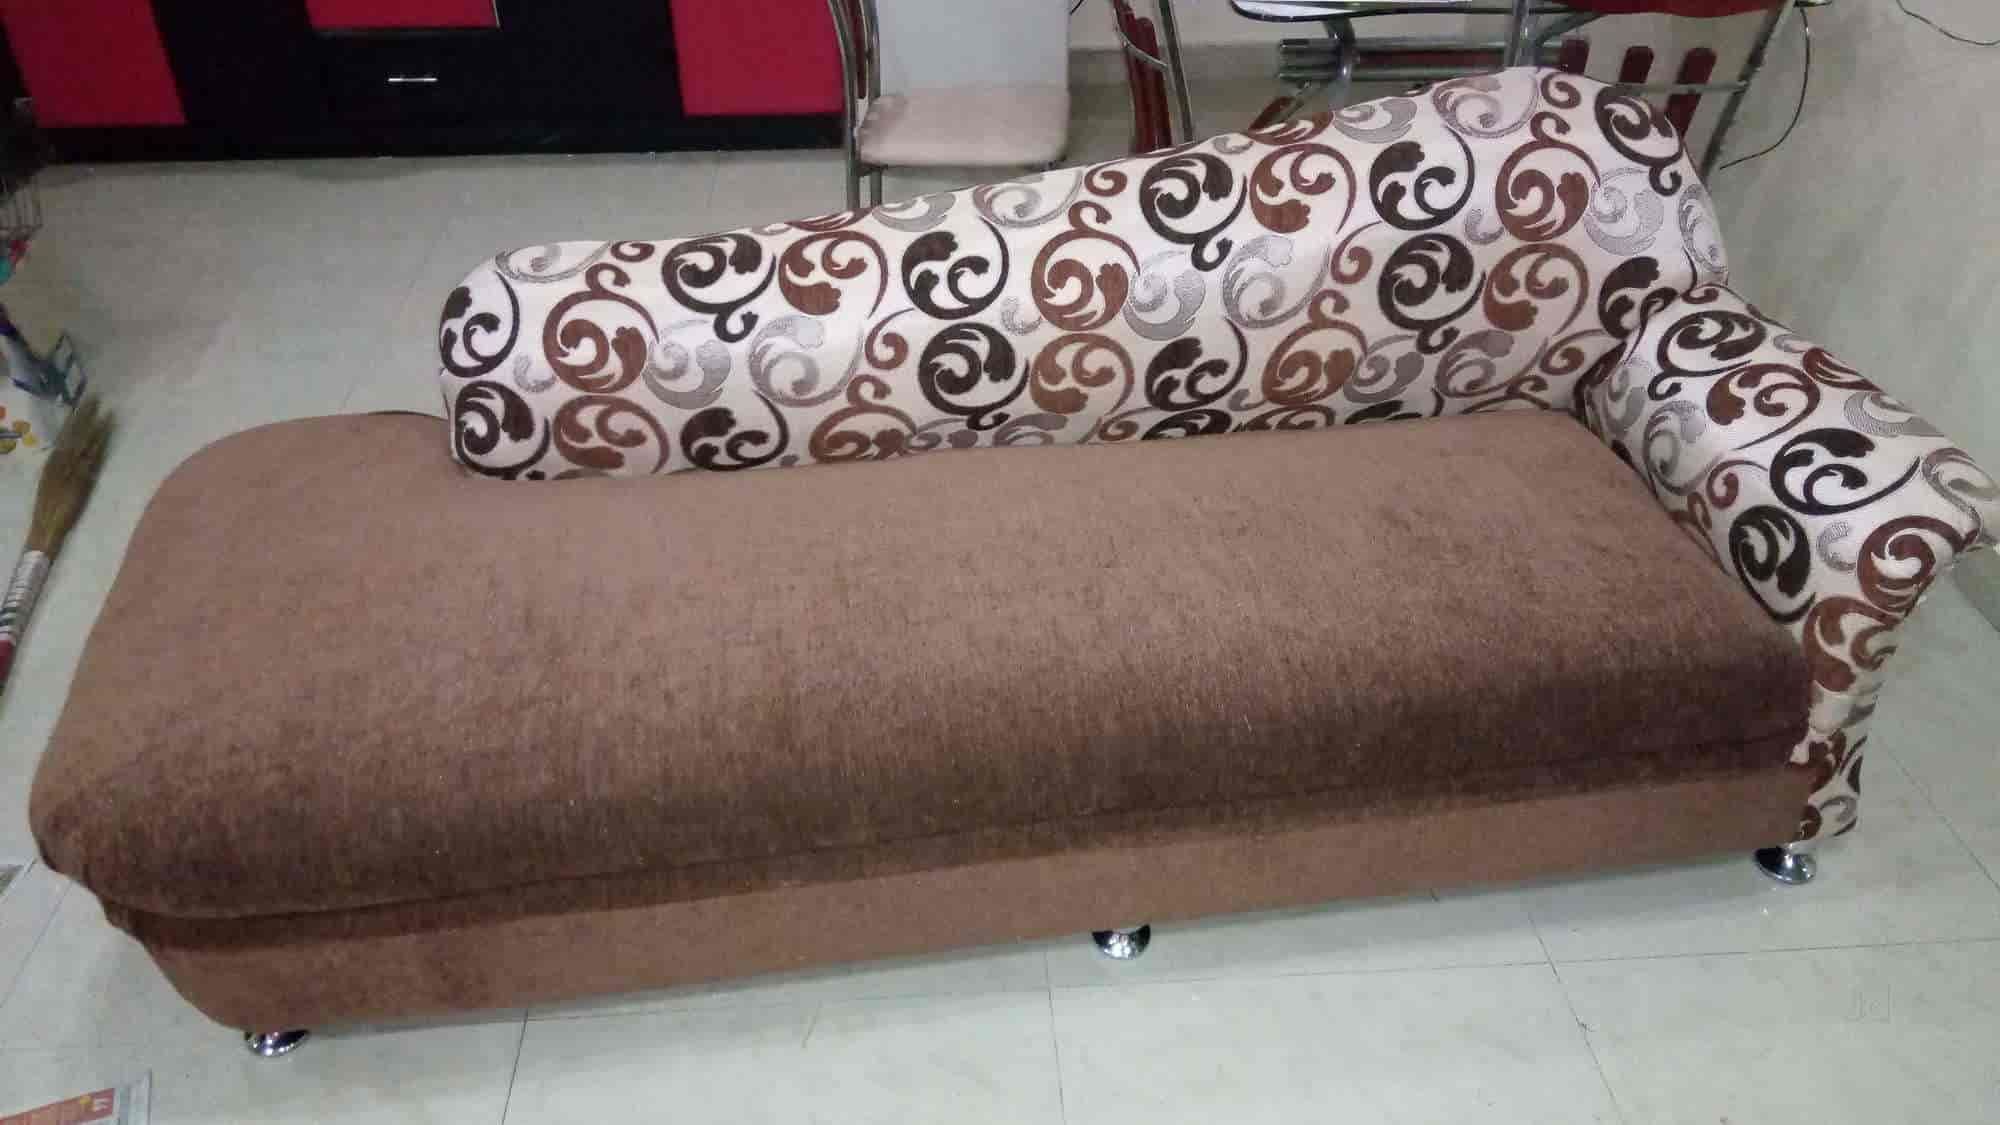 sofa manufacturing companies in india framework super makers photos new nallakunta hyderabad pictures set repair services